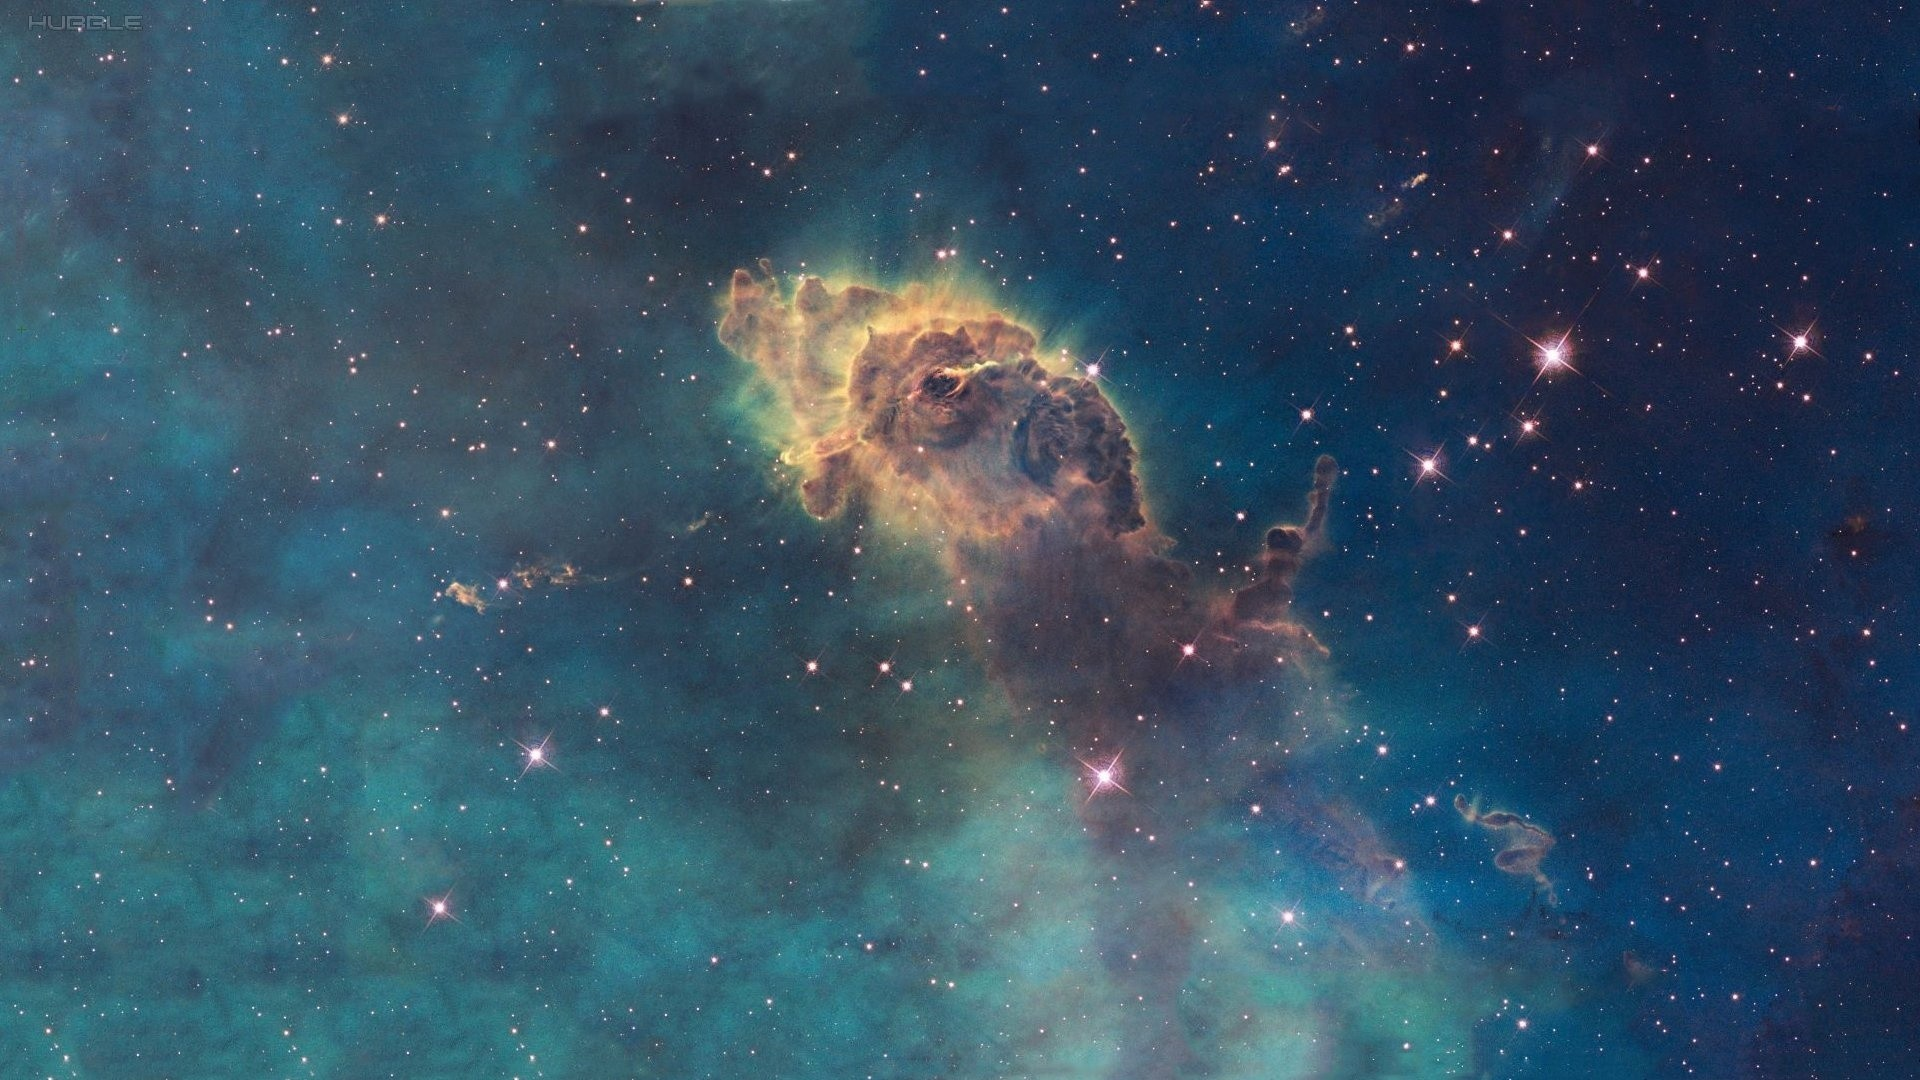 Hubble Space Wallpapers Picture with High Definition Wallpaper px  379.91 KB Other Real Wallpapers 1920×1080